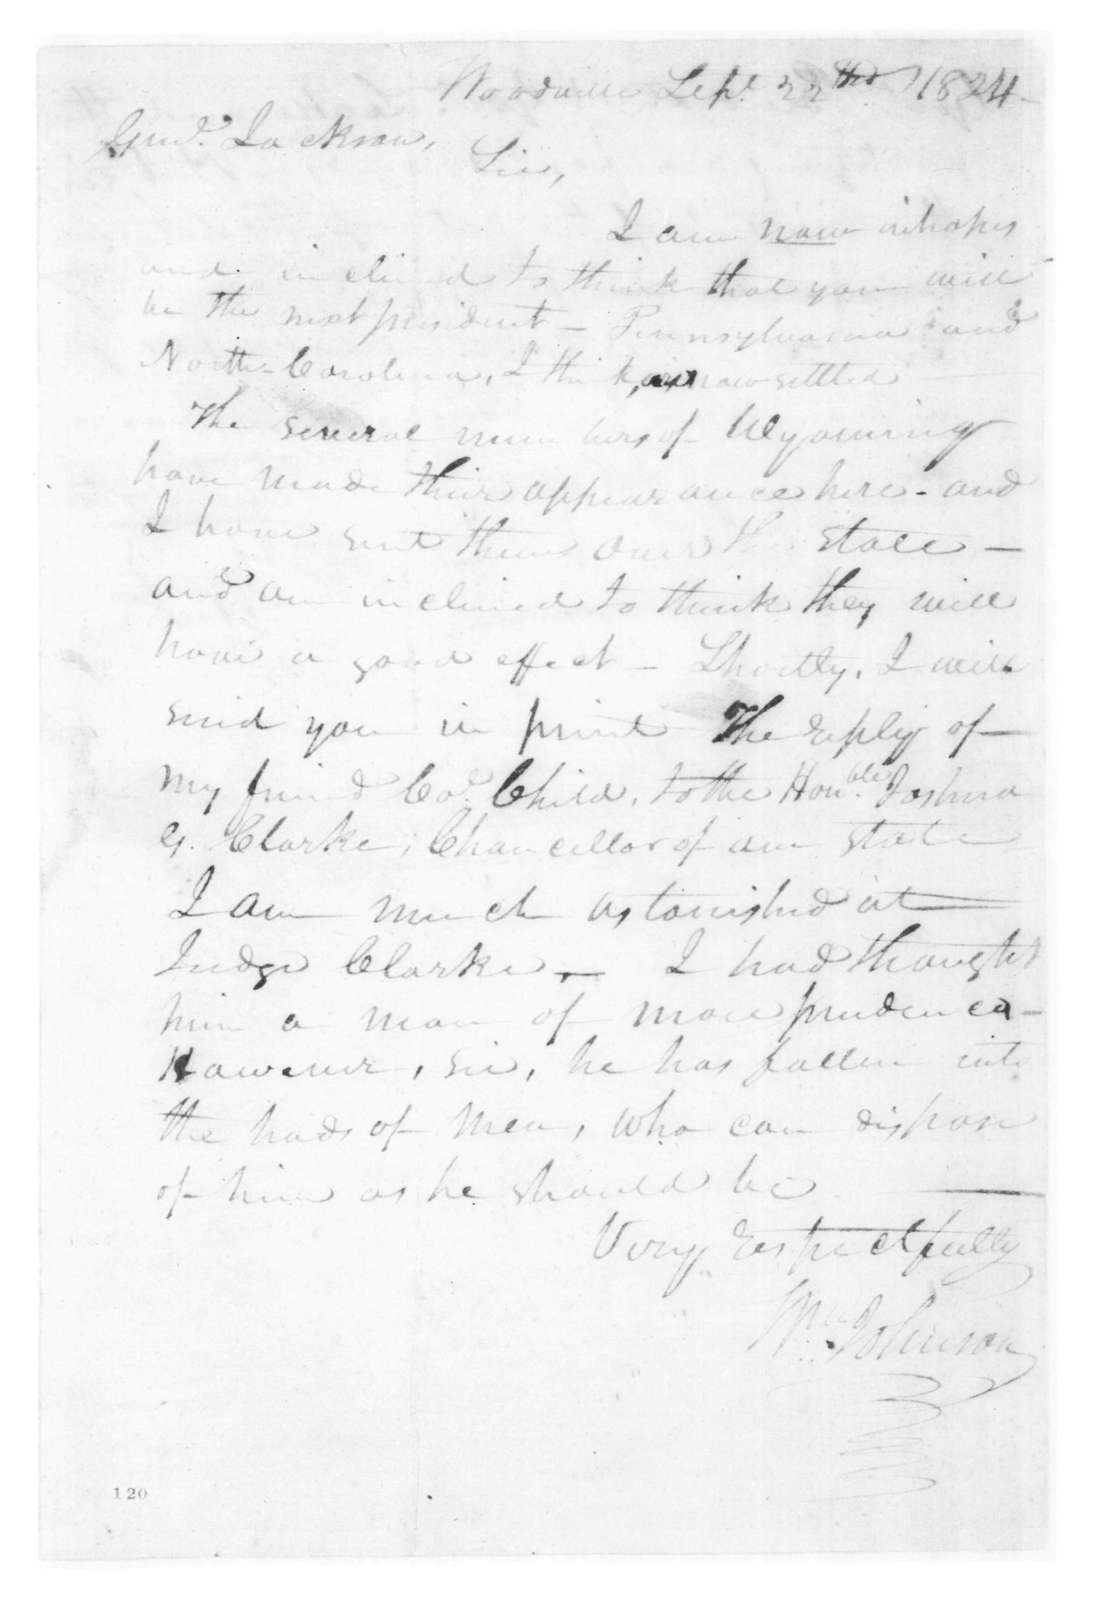 William Johnson to Andrew Jackson, September 22, 1824